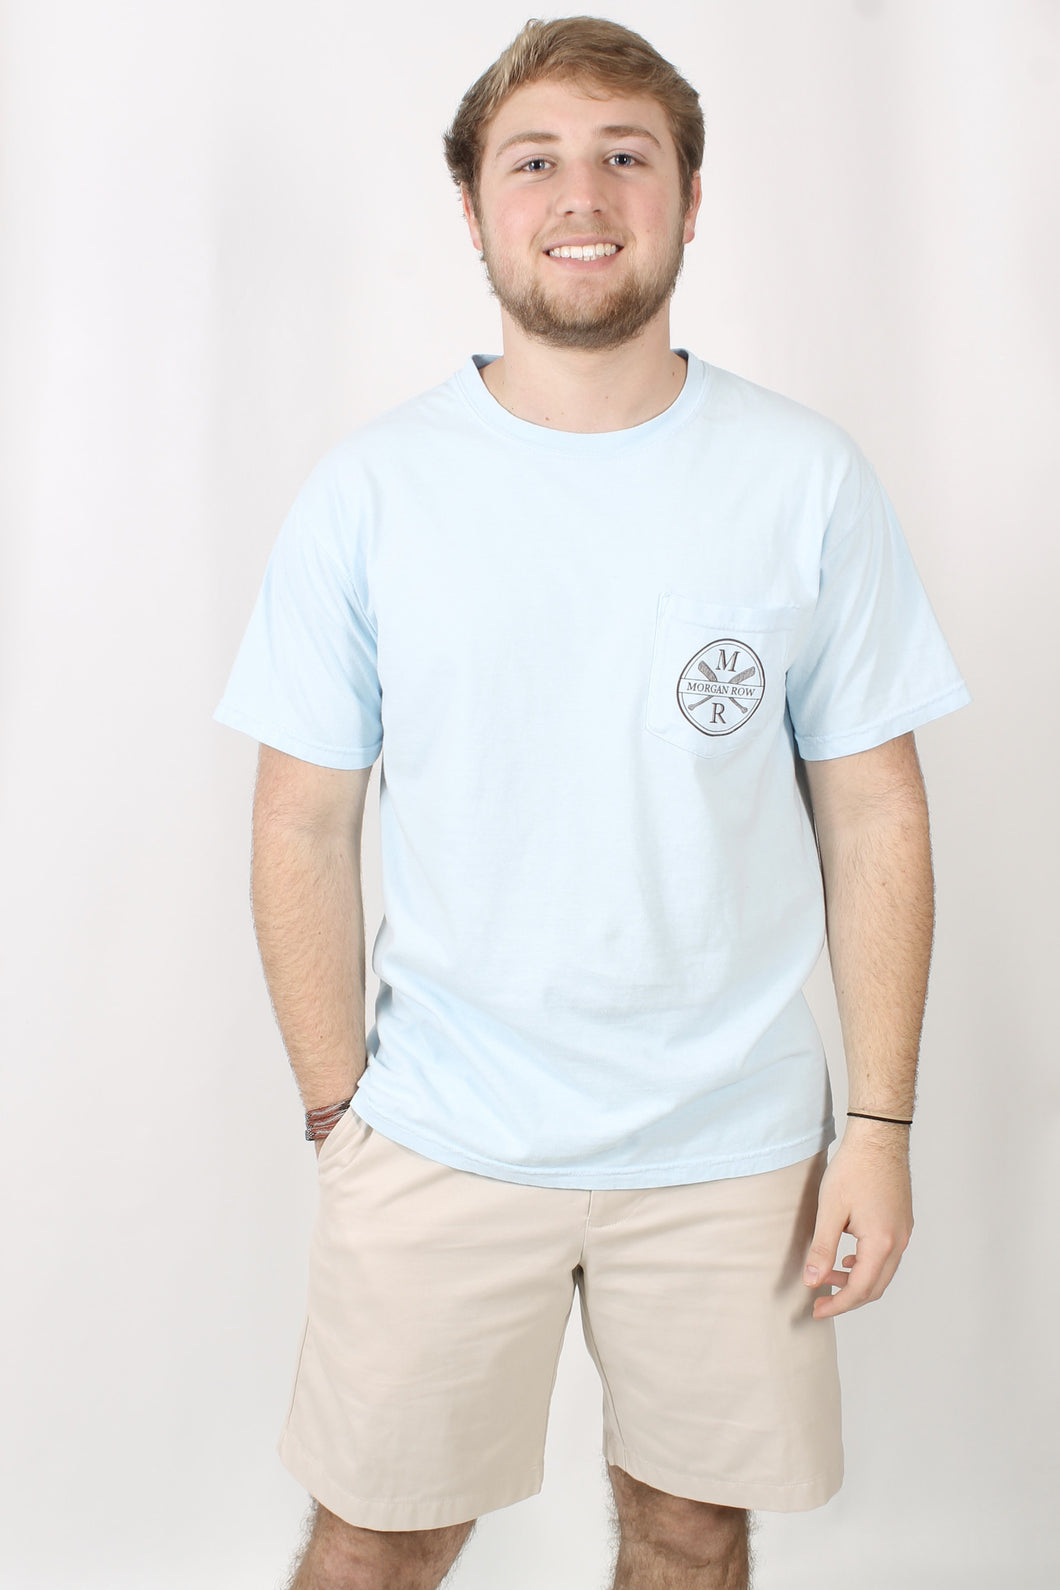 Chambray S/S- Morgan Row Don't Stop Retrievin' Tee Front